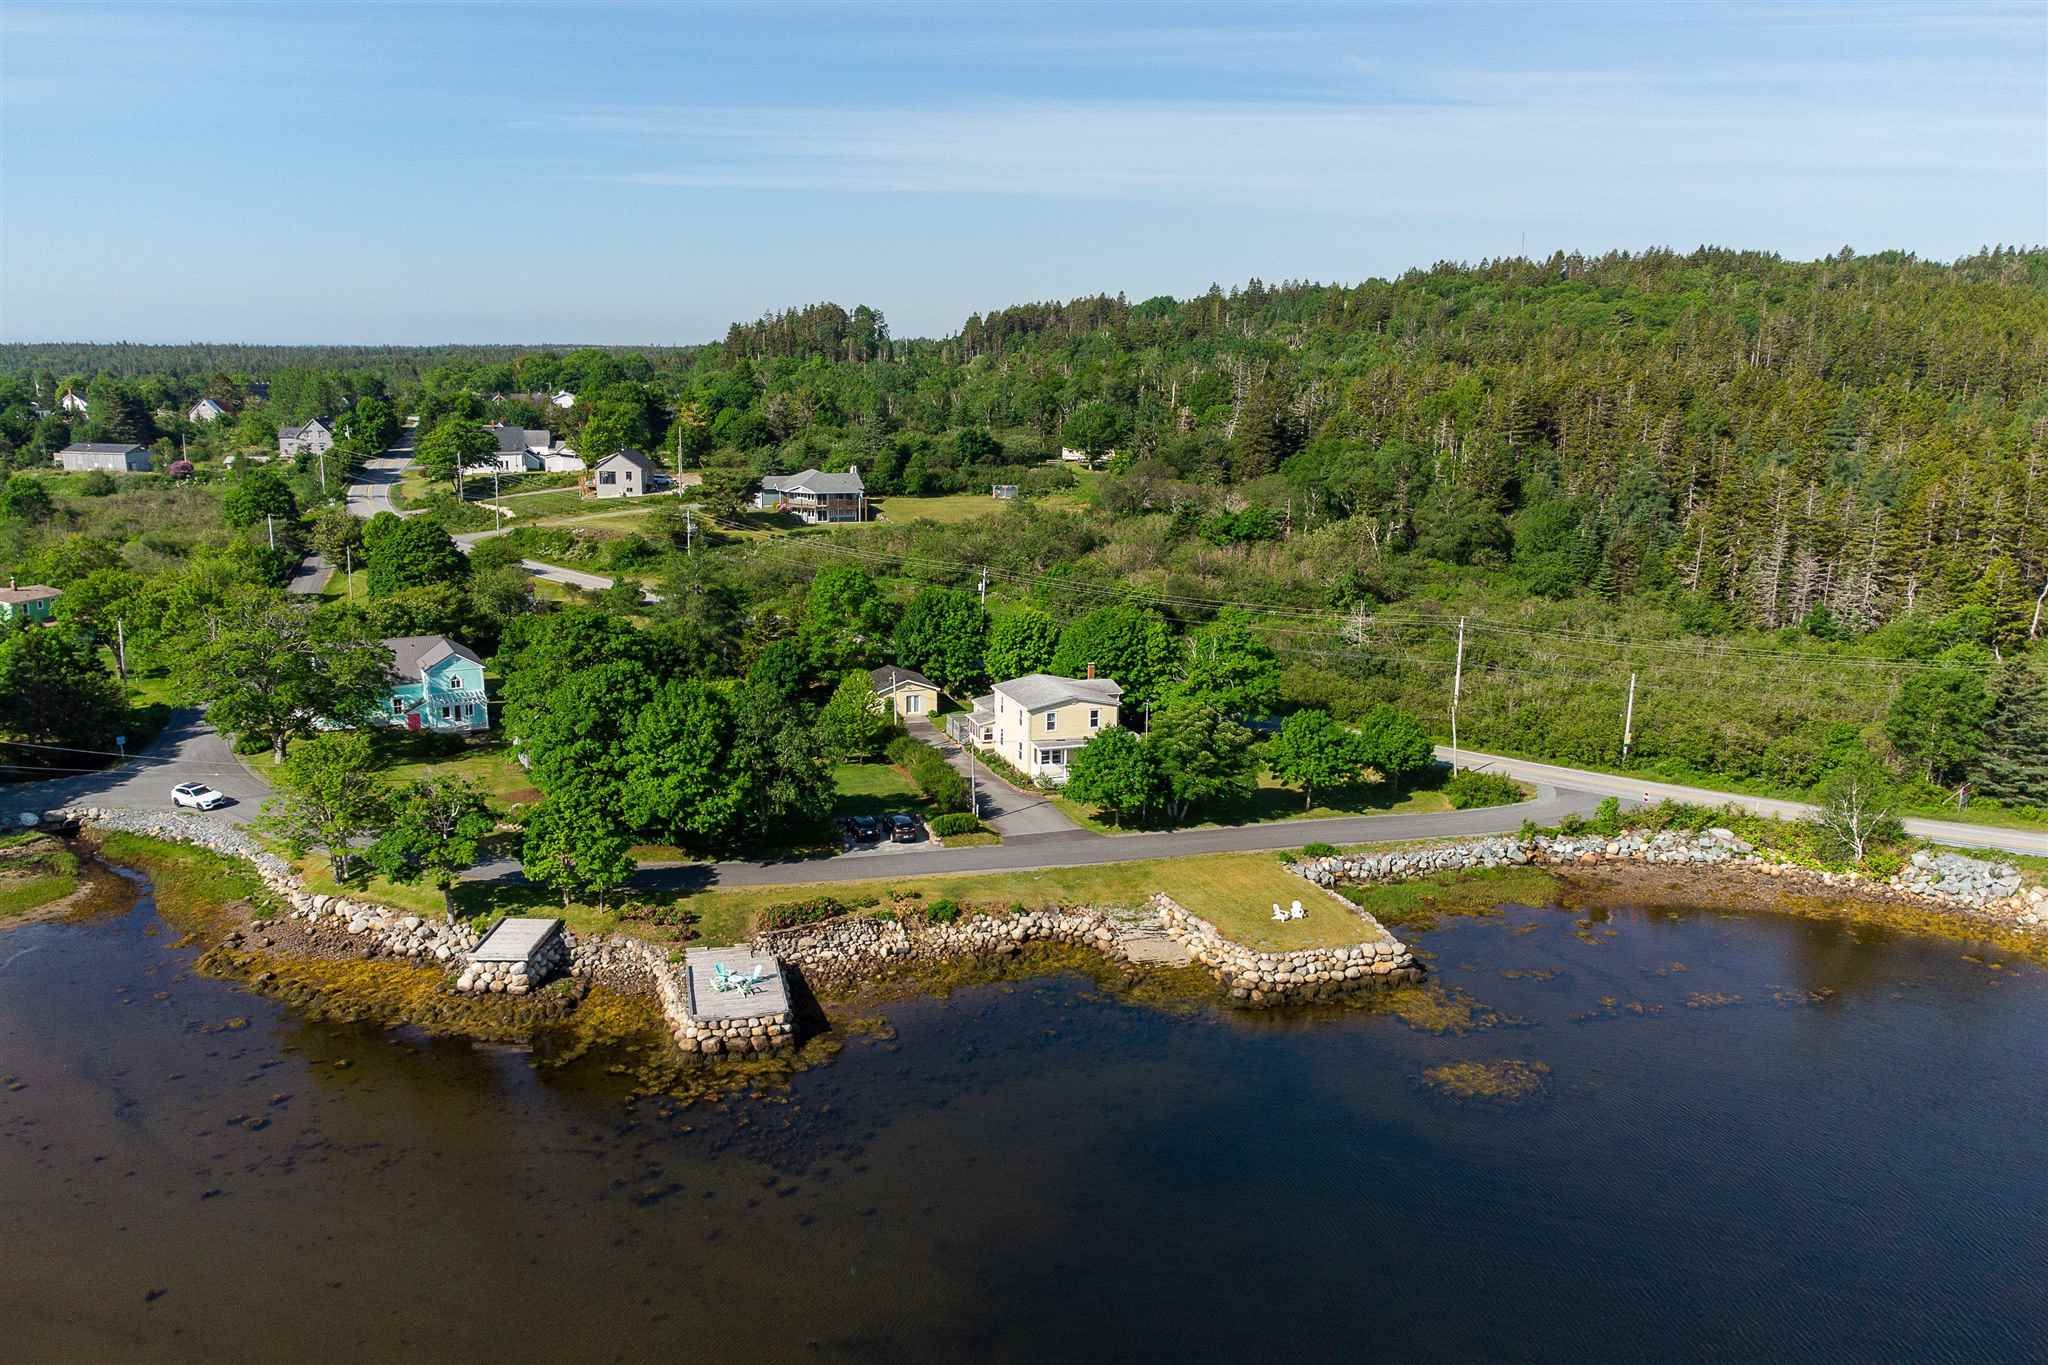 Main Photo: 8 Fort Point Road in Lahave: 405-Lunenburg County Residential for sale (South Shore)  : MLS®# 202115901